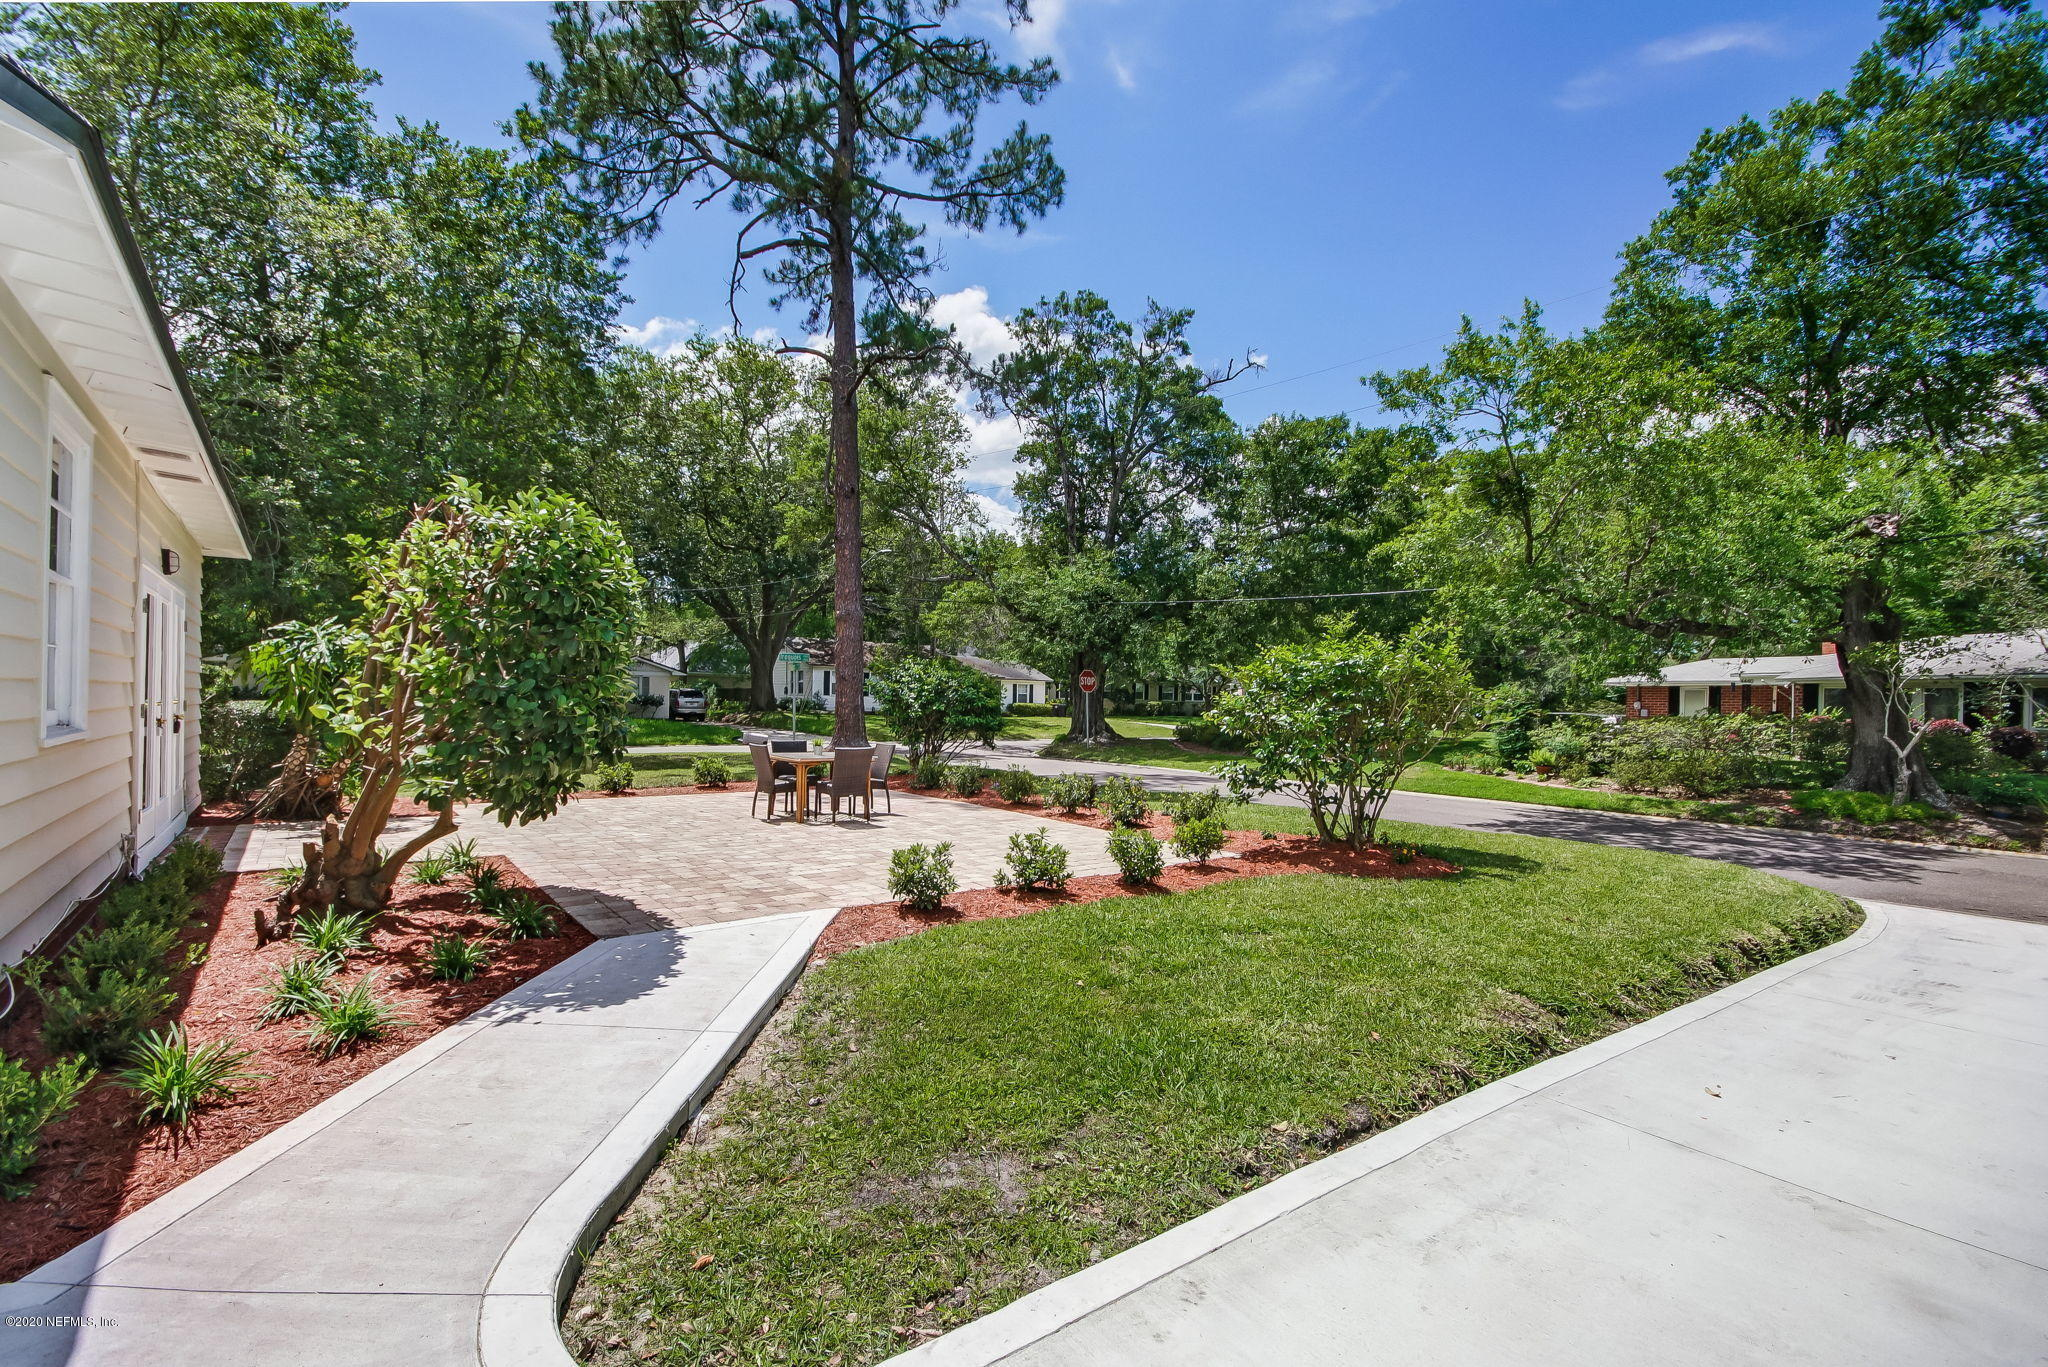 4545 IROQUOIS, JACKSONVILLE, FLORIDA 32210, 3 Bedrooms Bedrooms, ,2 BathroomsBathrooms,Residential,For sale,IROQUOIS,1051265